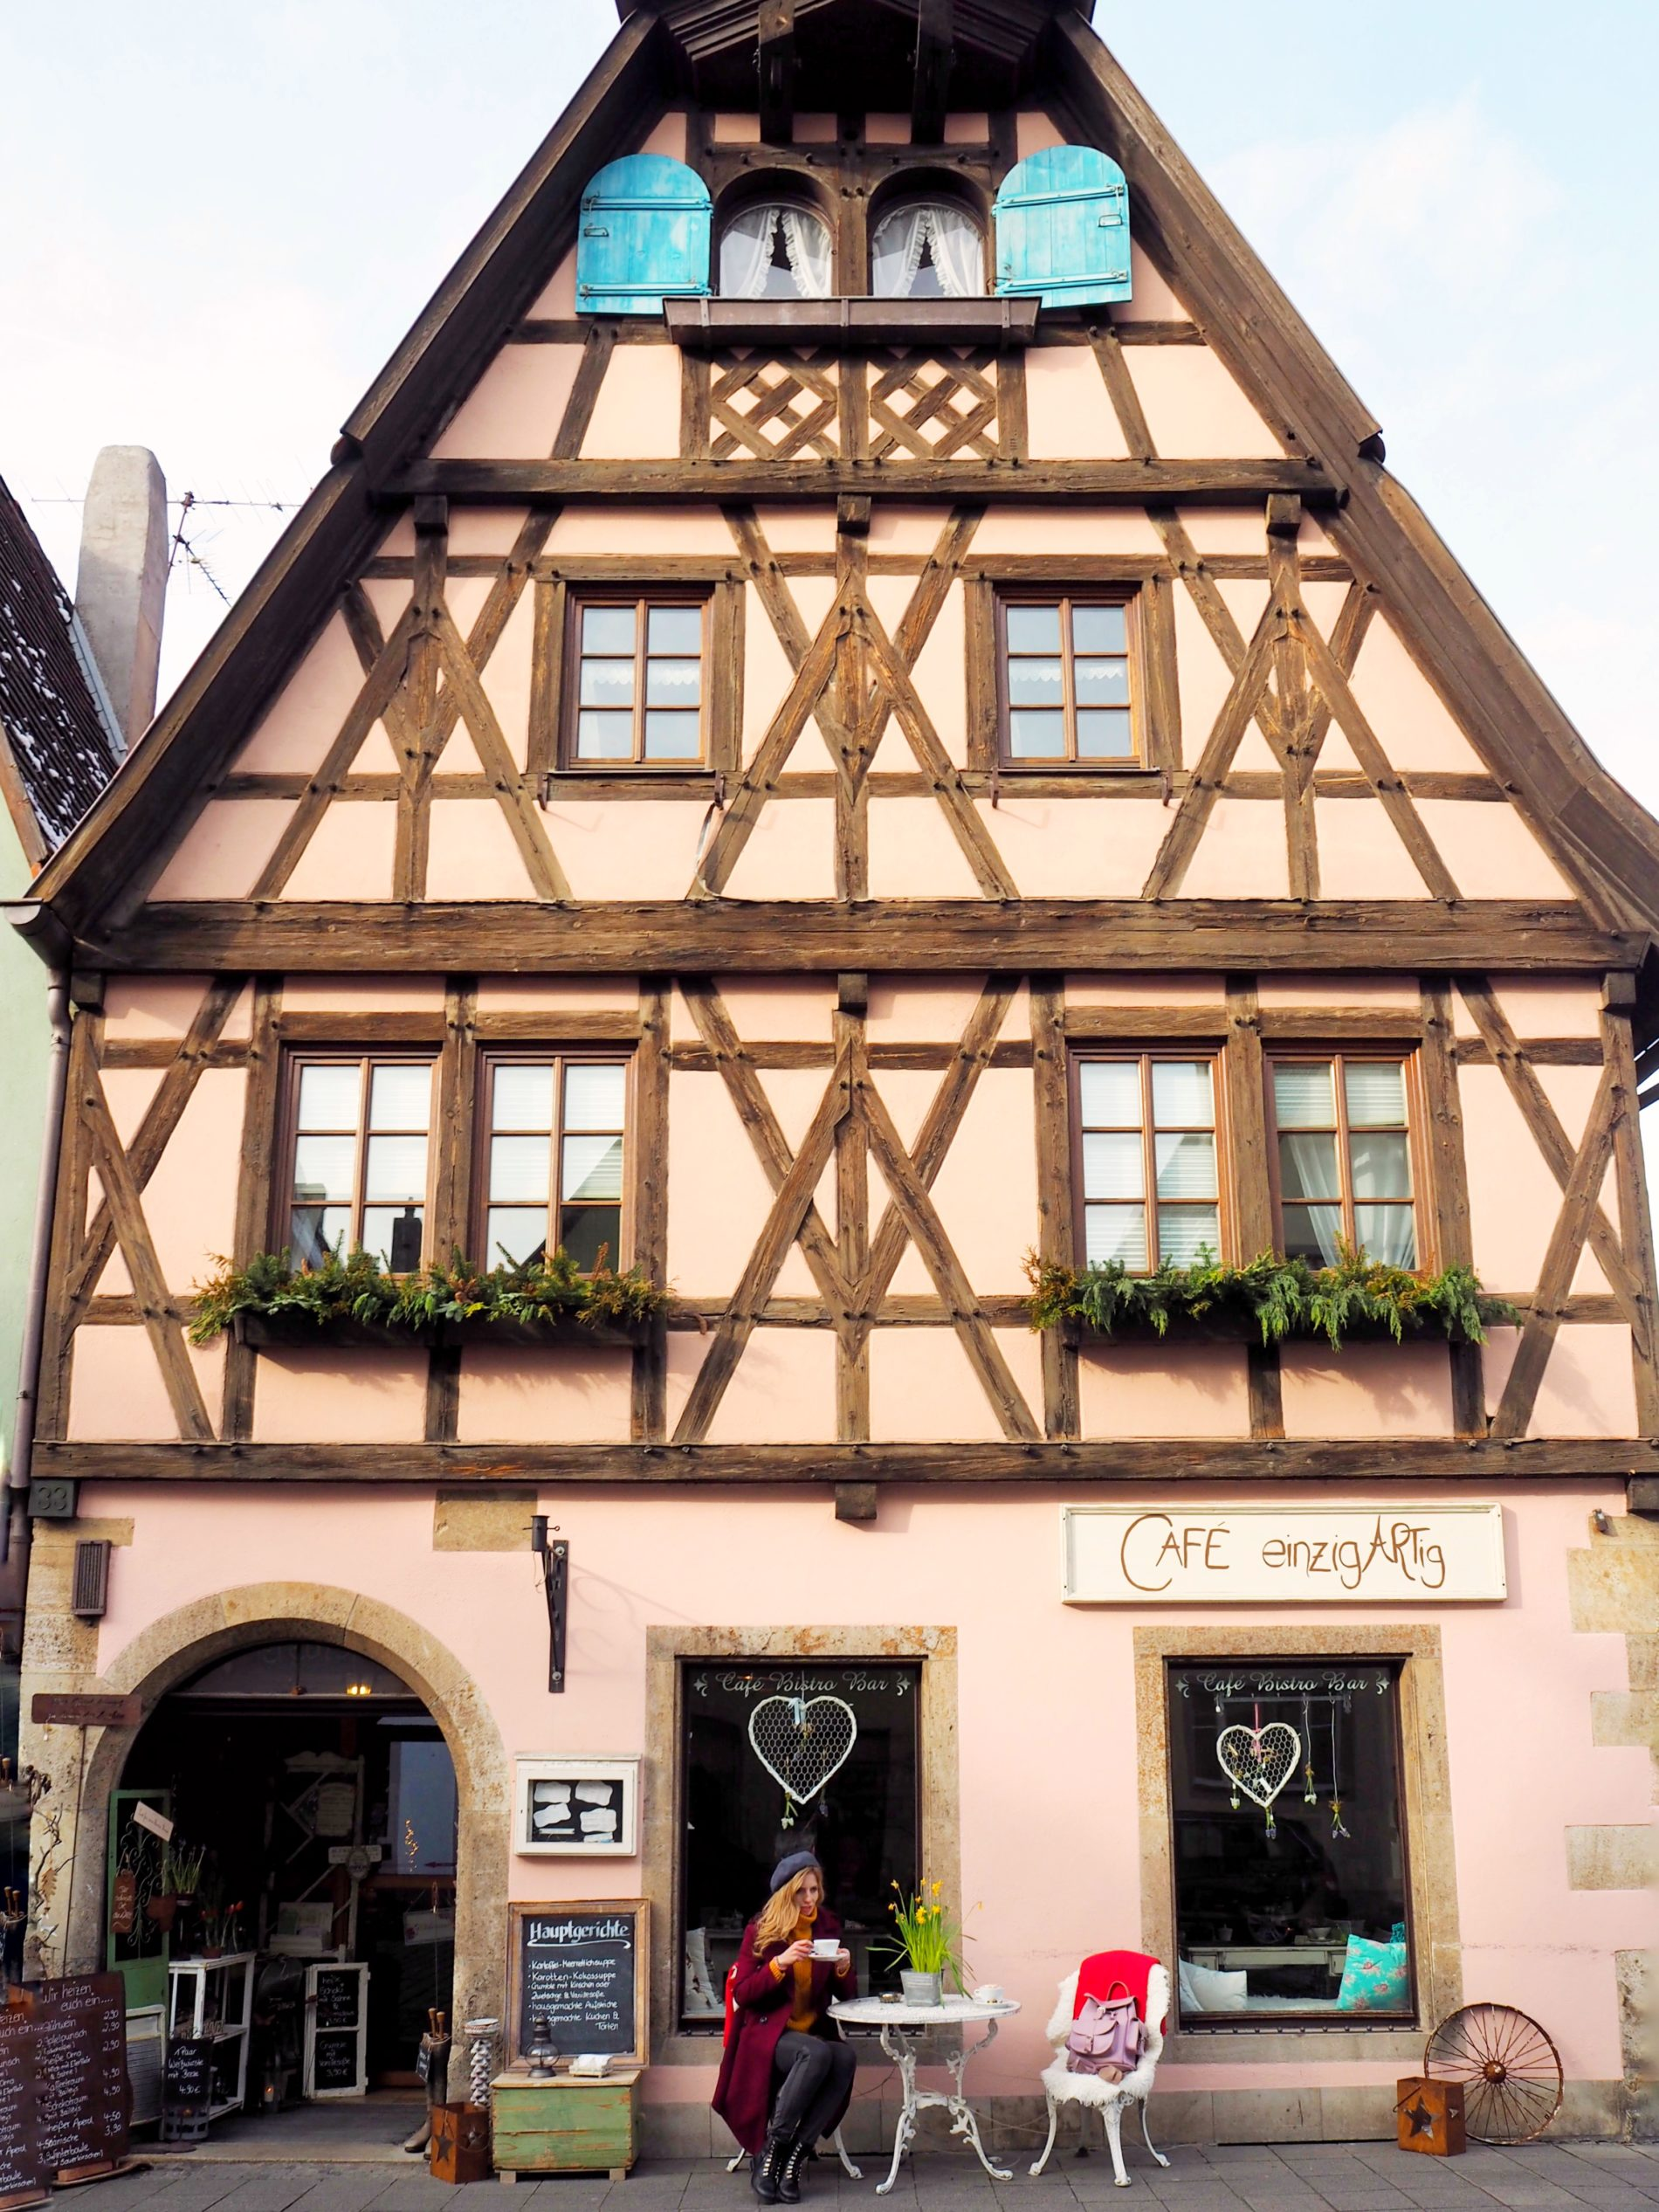 germany rothenburg ob der tauber quick guide. Black Bedroom Furniture Sets. Home Design Ideas